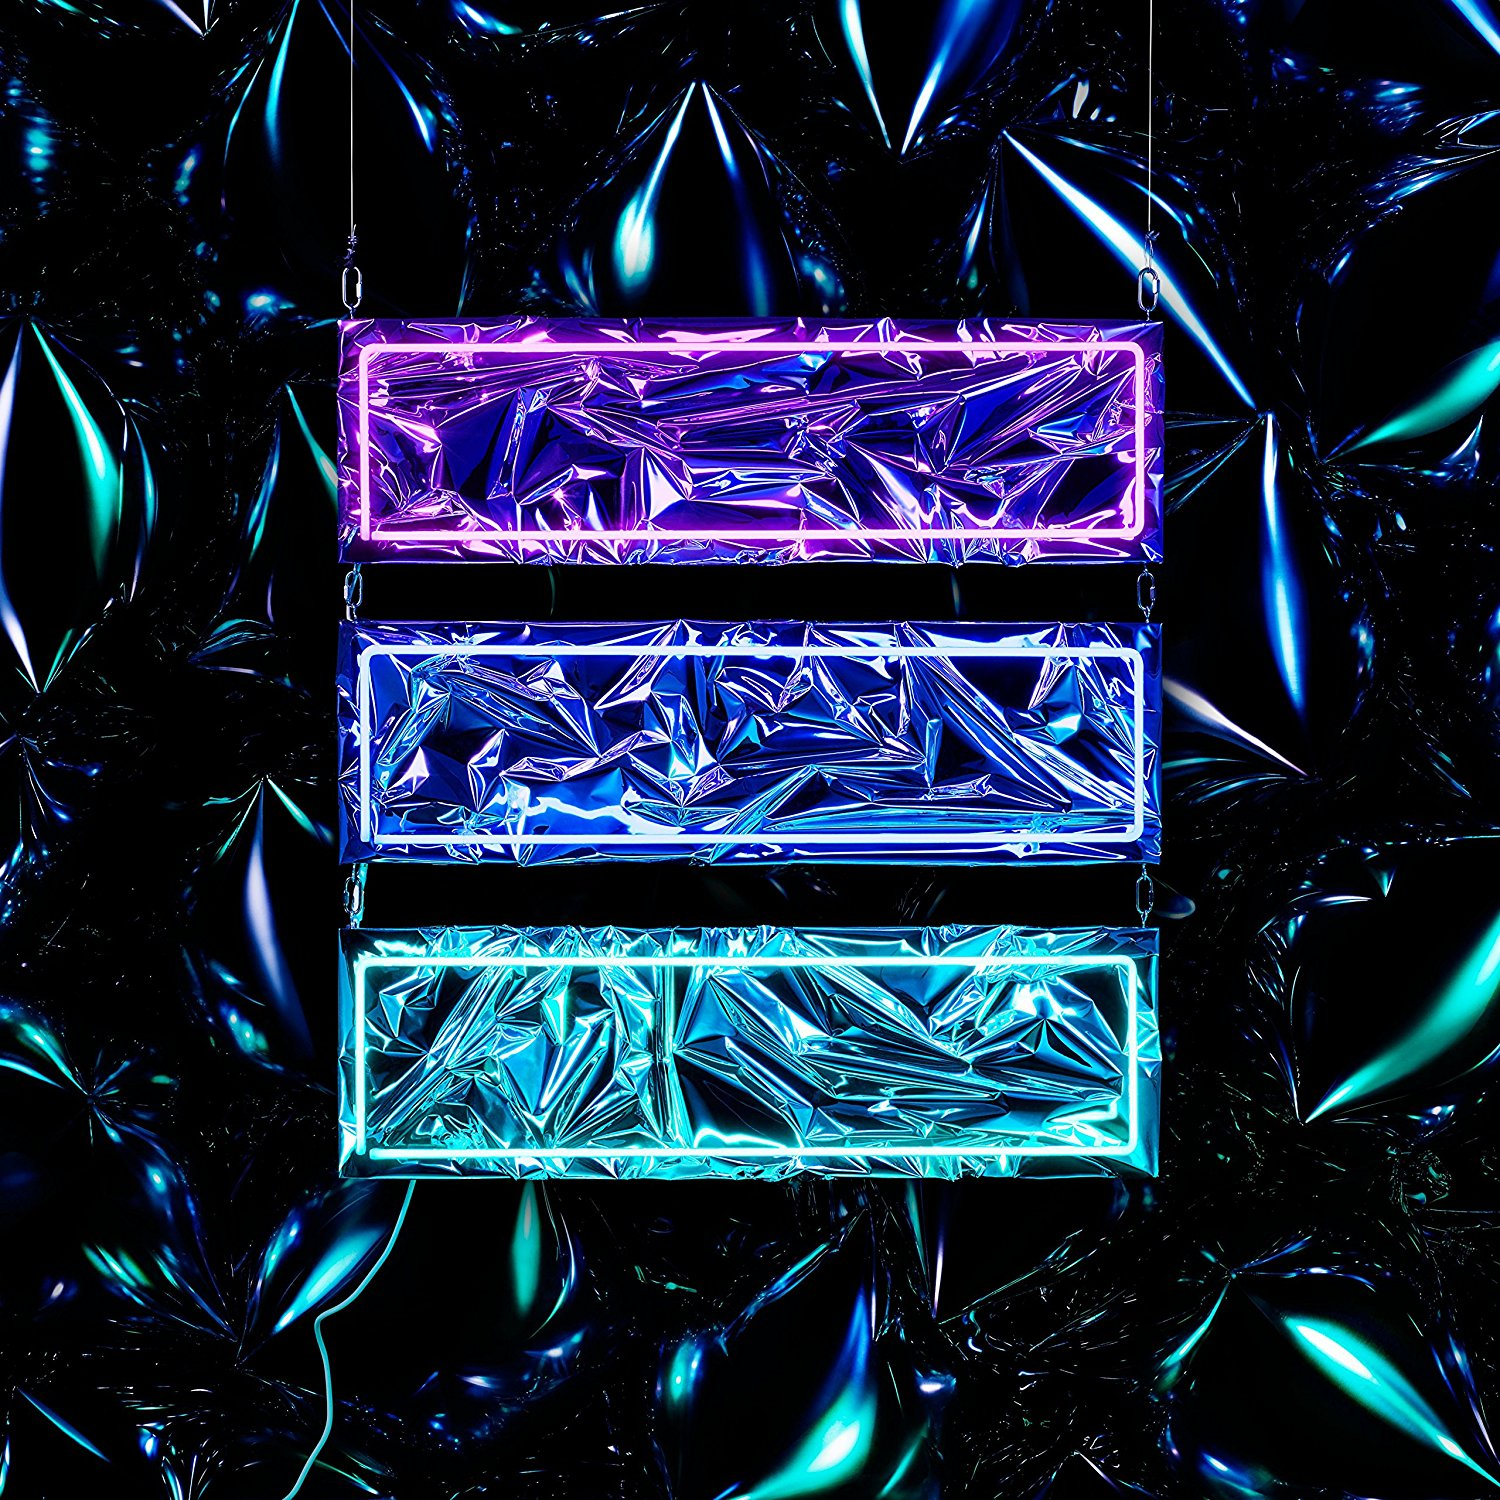 Two Door Cinema Club: Gameshow [Album Review]